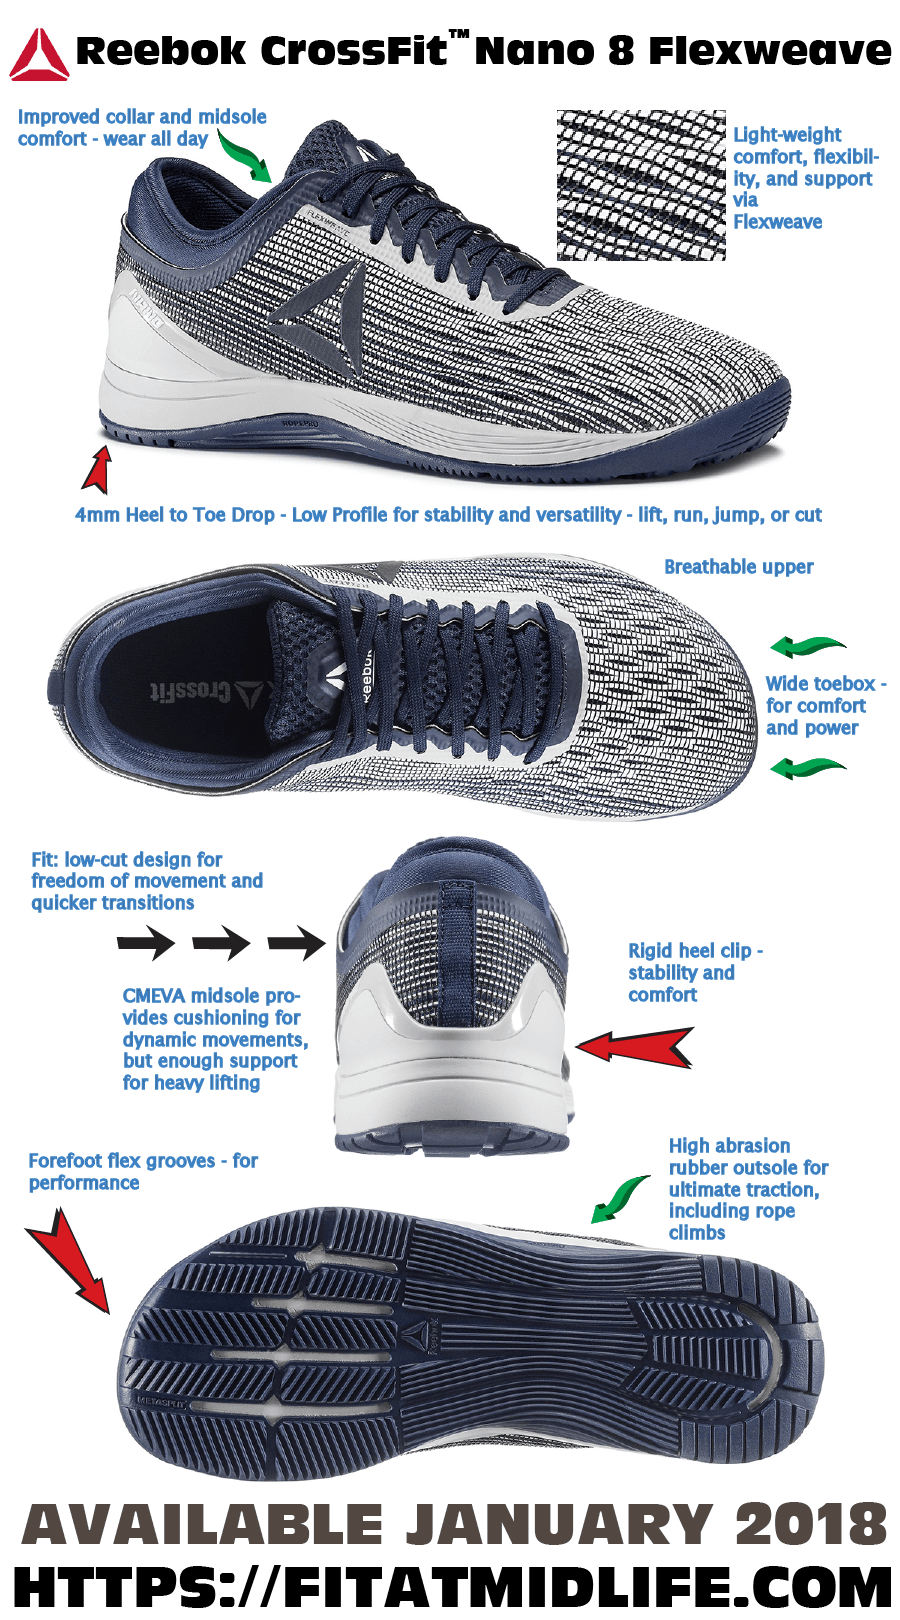 Reebok CrossFit Nano 8 Flexweave - Infographic - find out all about this great cross training shoe